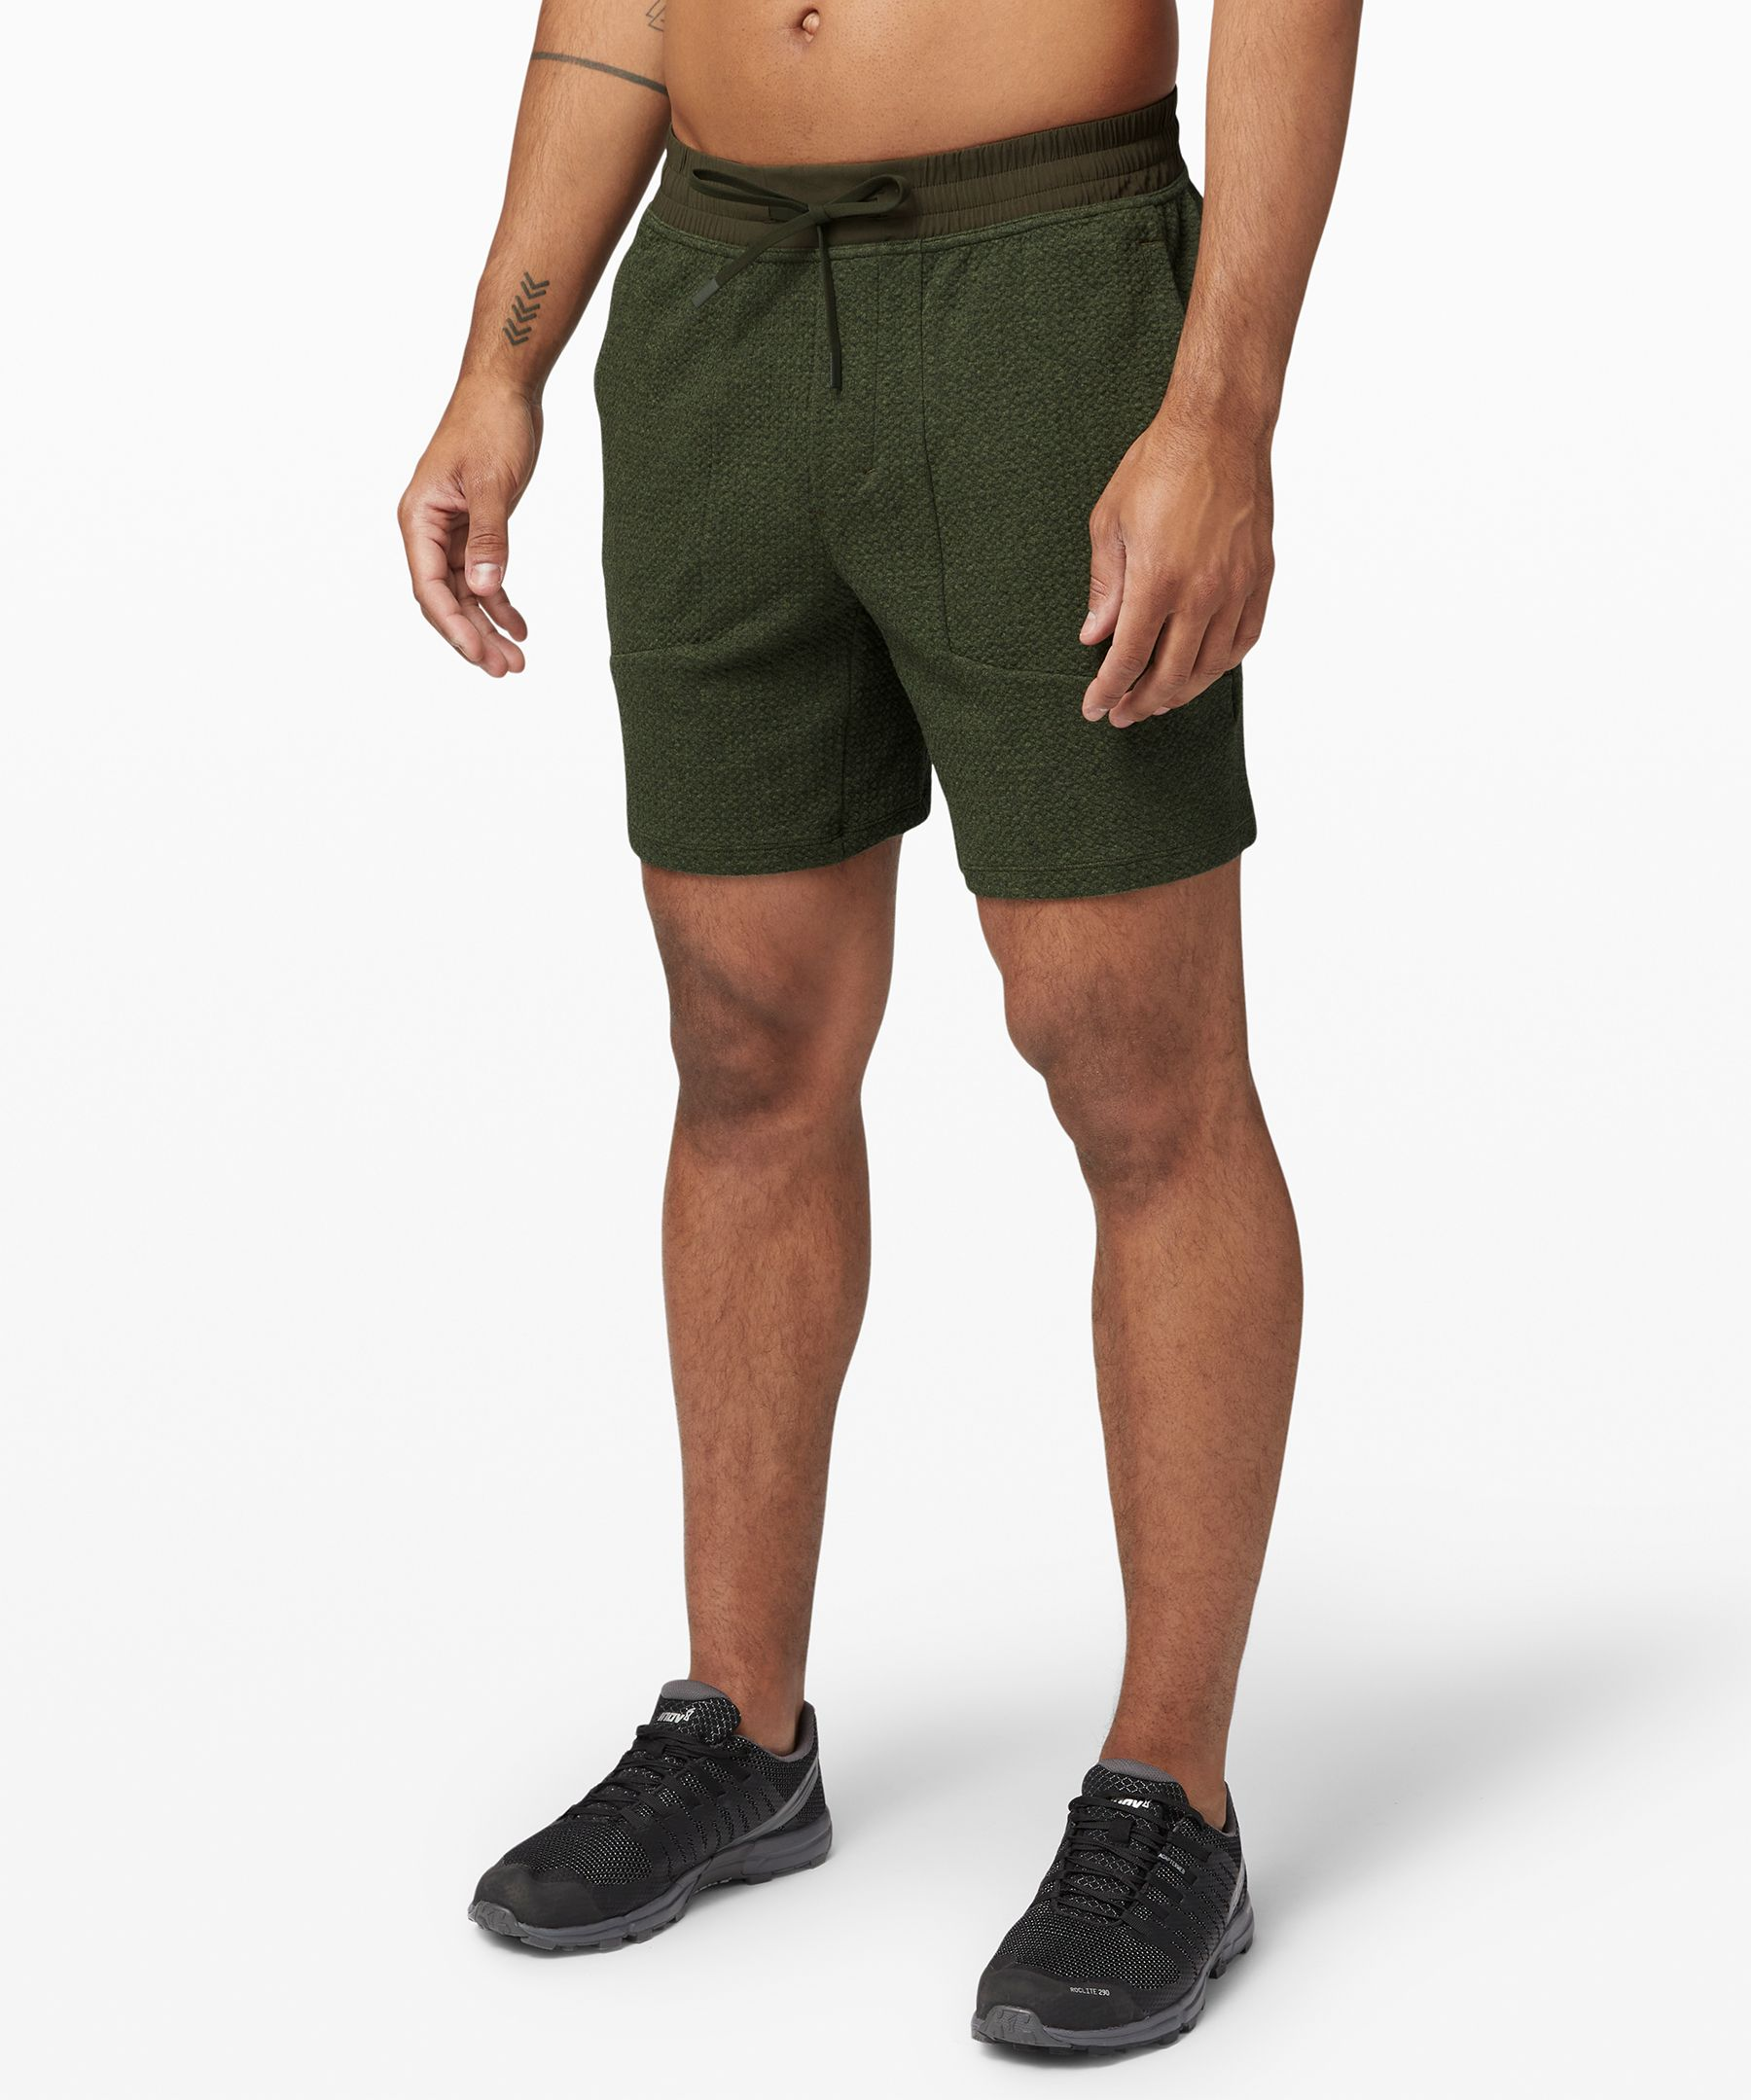 Relax and restore post workout  in these soft shorts with a  textured fabric that relaxes  over time.